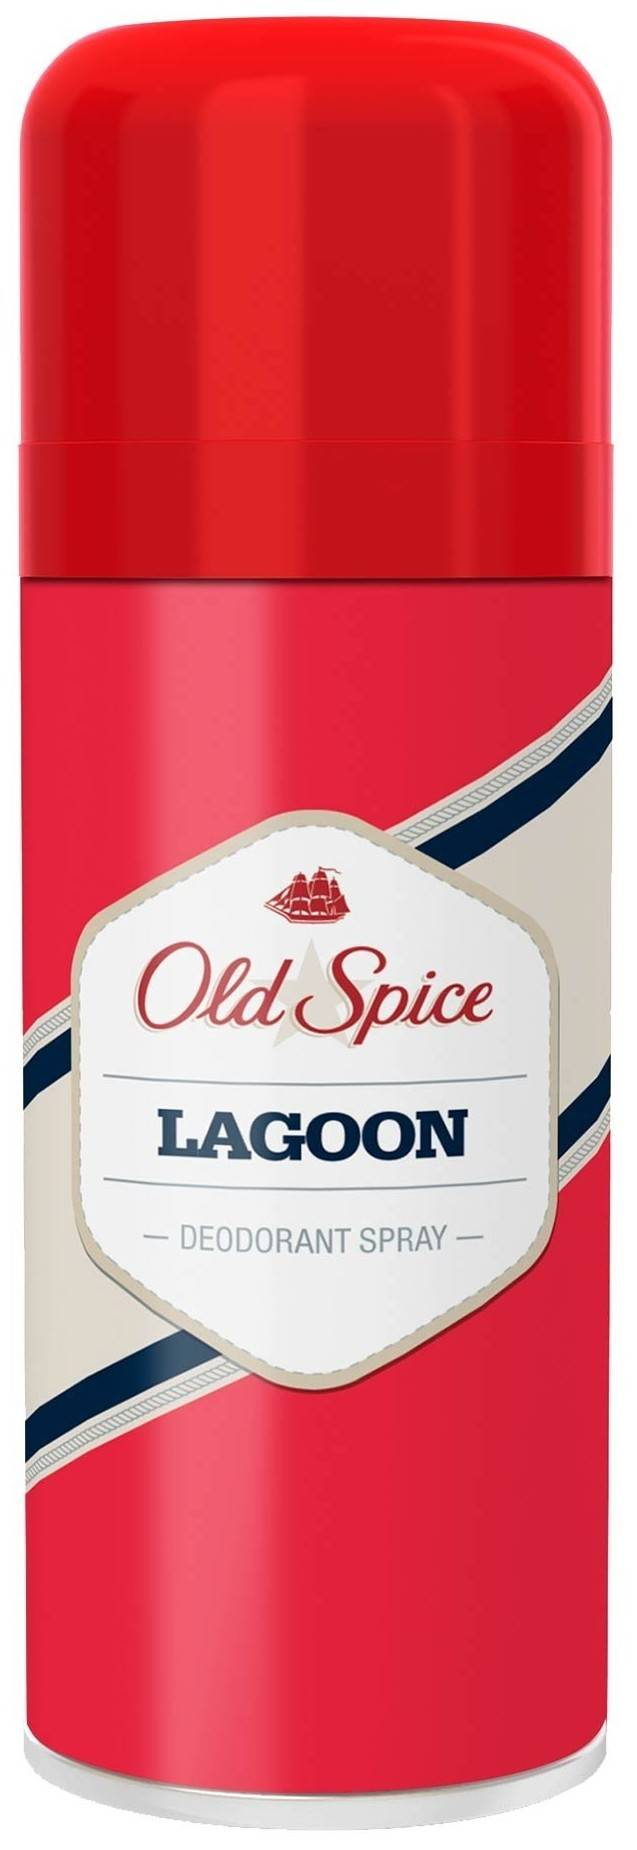 old spice deo spray lagoon 125ml